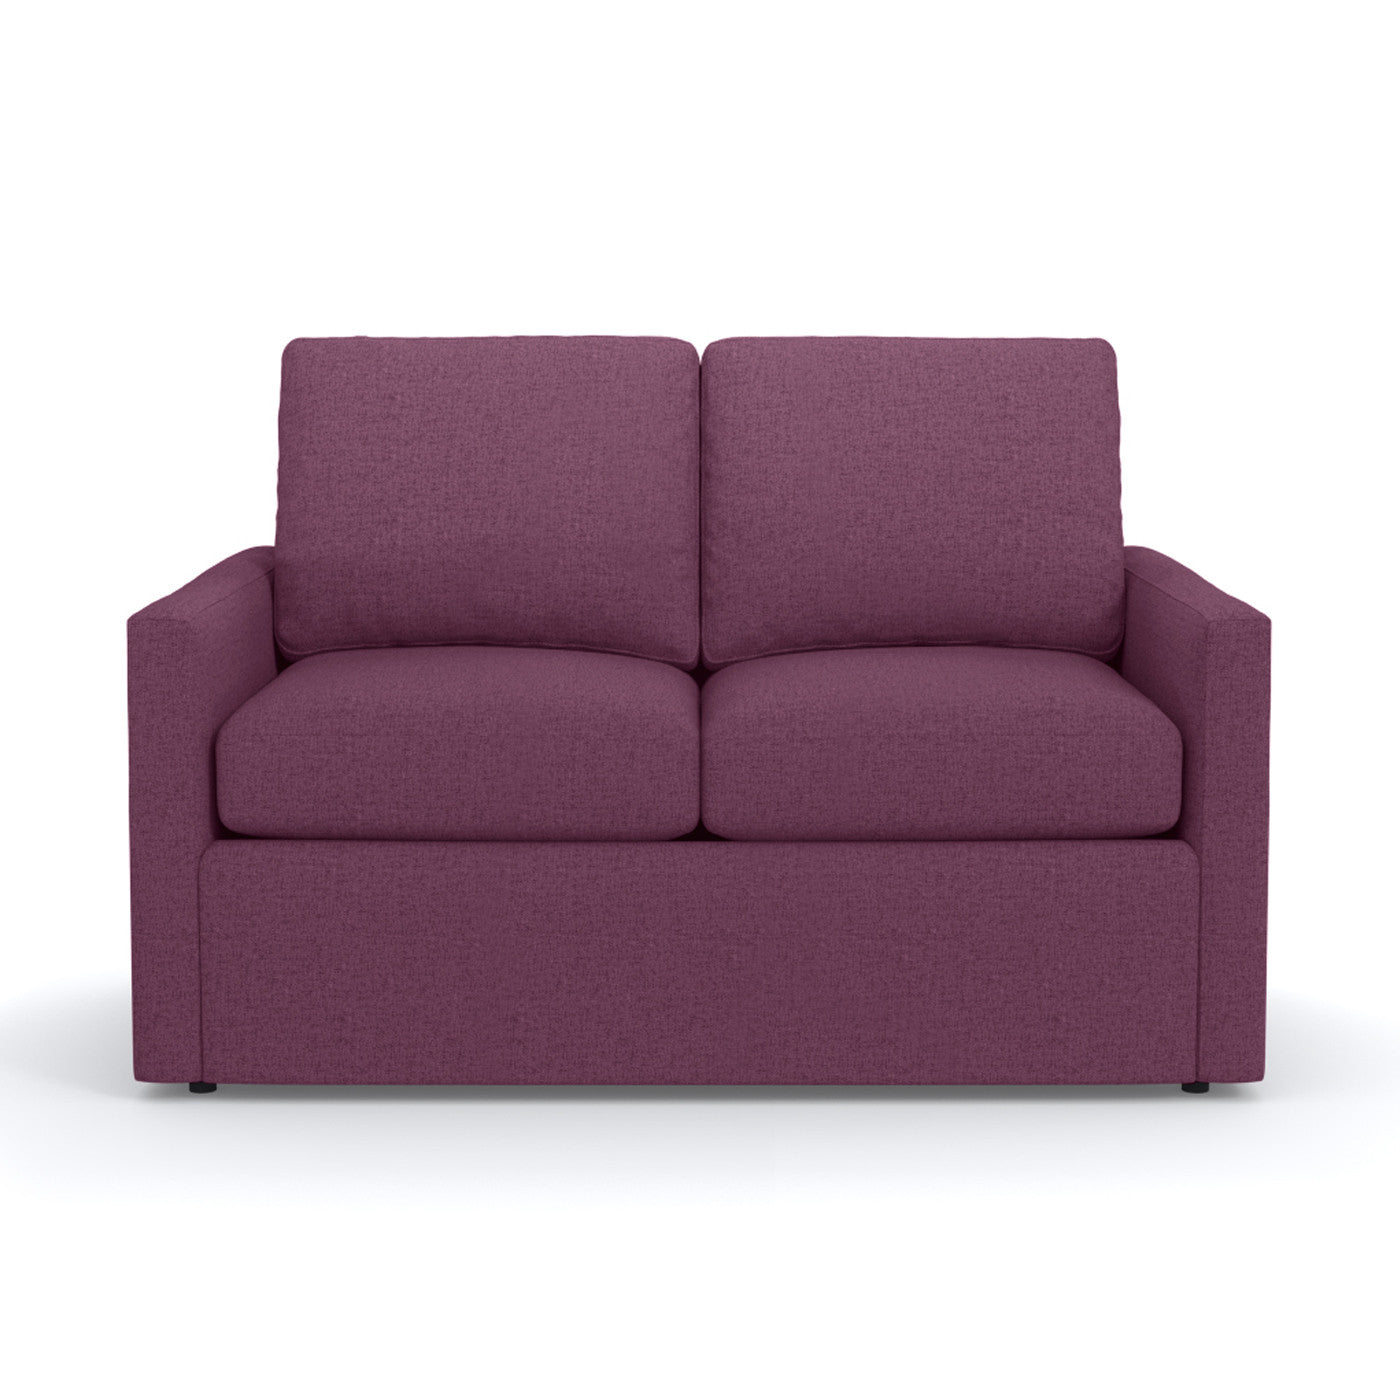 Fabian Apartment Size Sofa CHOICE OF FABRICS